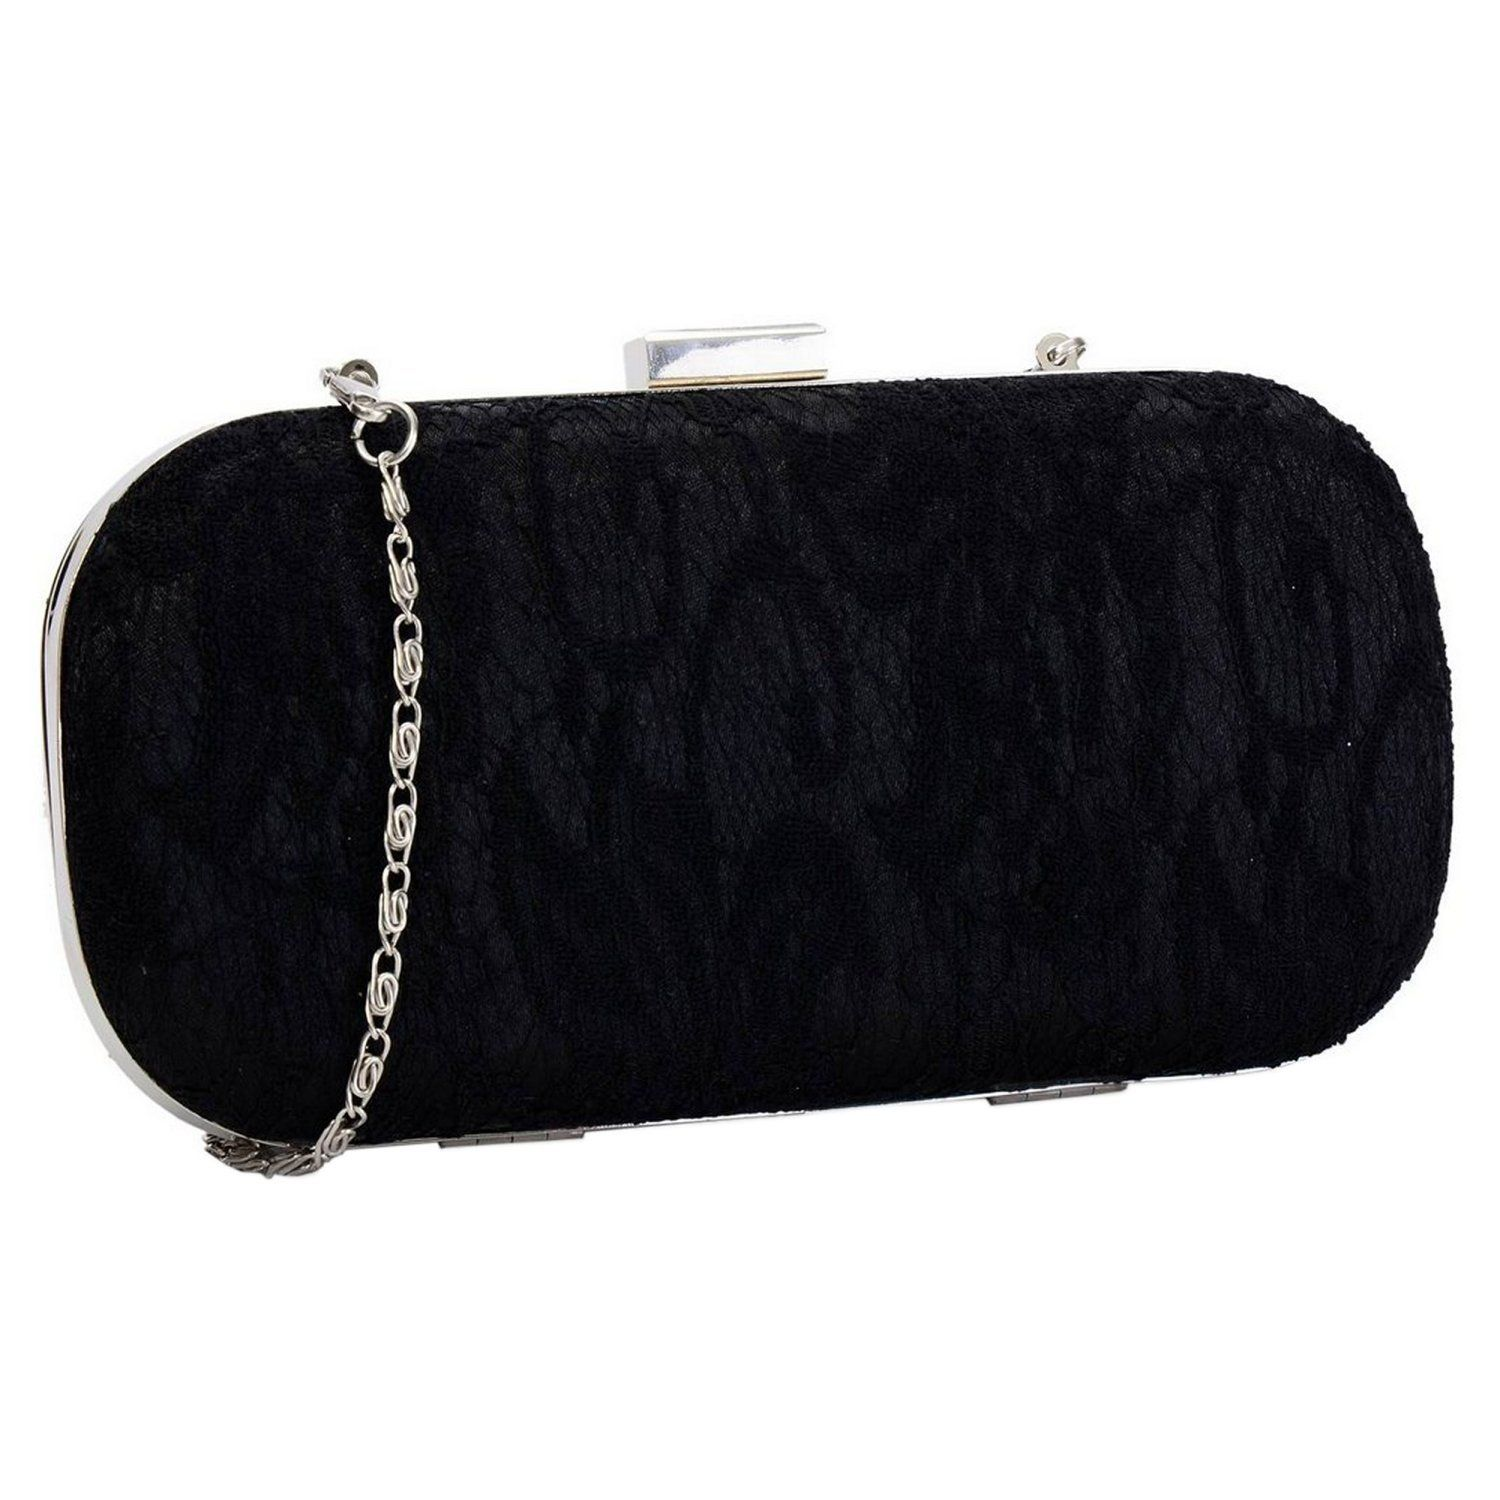 3ed0a5633a Lace Covered Hard Case Box Style Clutch Evening Bag With A Long Chain  (Red)  Amazon.co.uk  Shoes   Bags